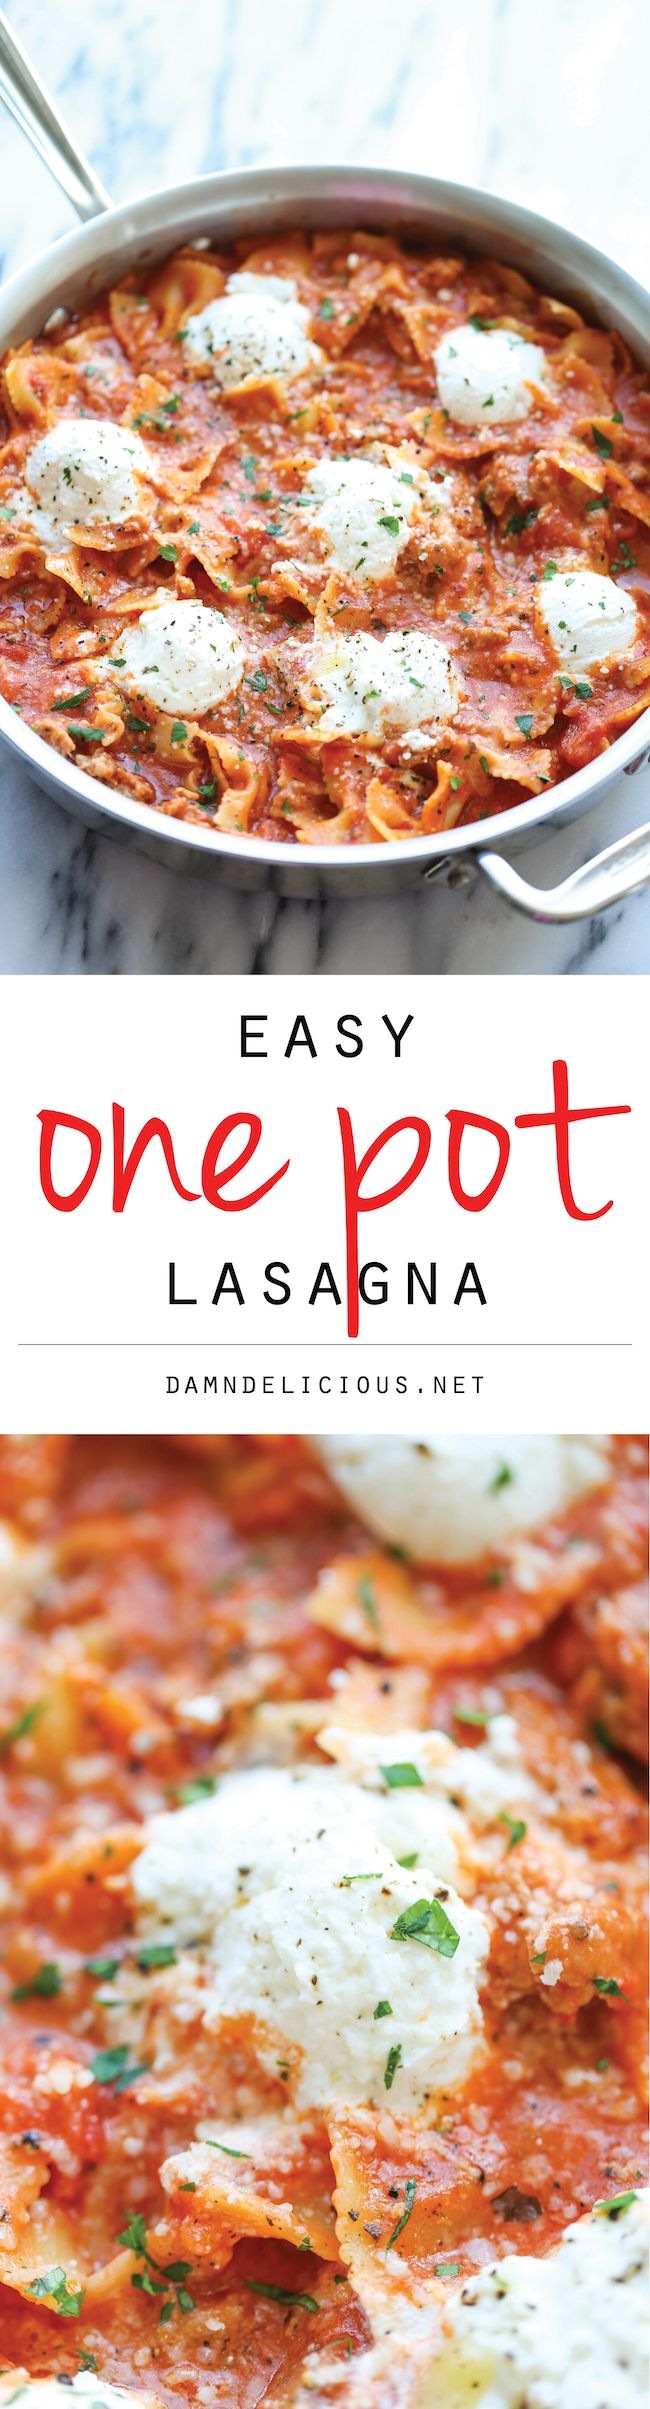 Easy One Pot Lasagna - The easiest 30-min lasagna made in a single pot - no boiling, no layering, nothing - the pasta gets cooked right in the pan! Option:  omit meat